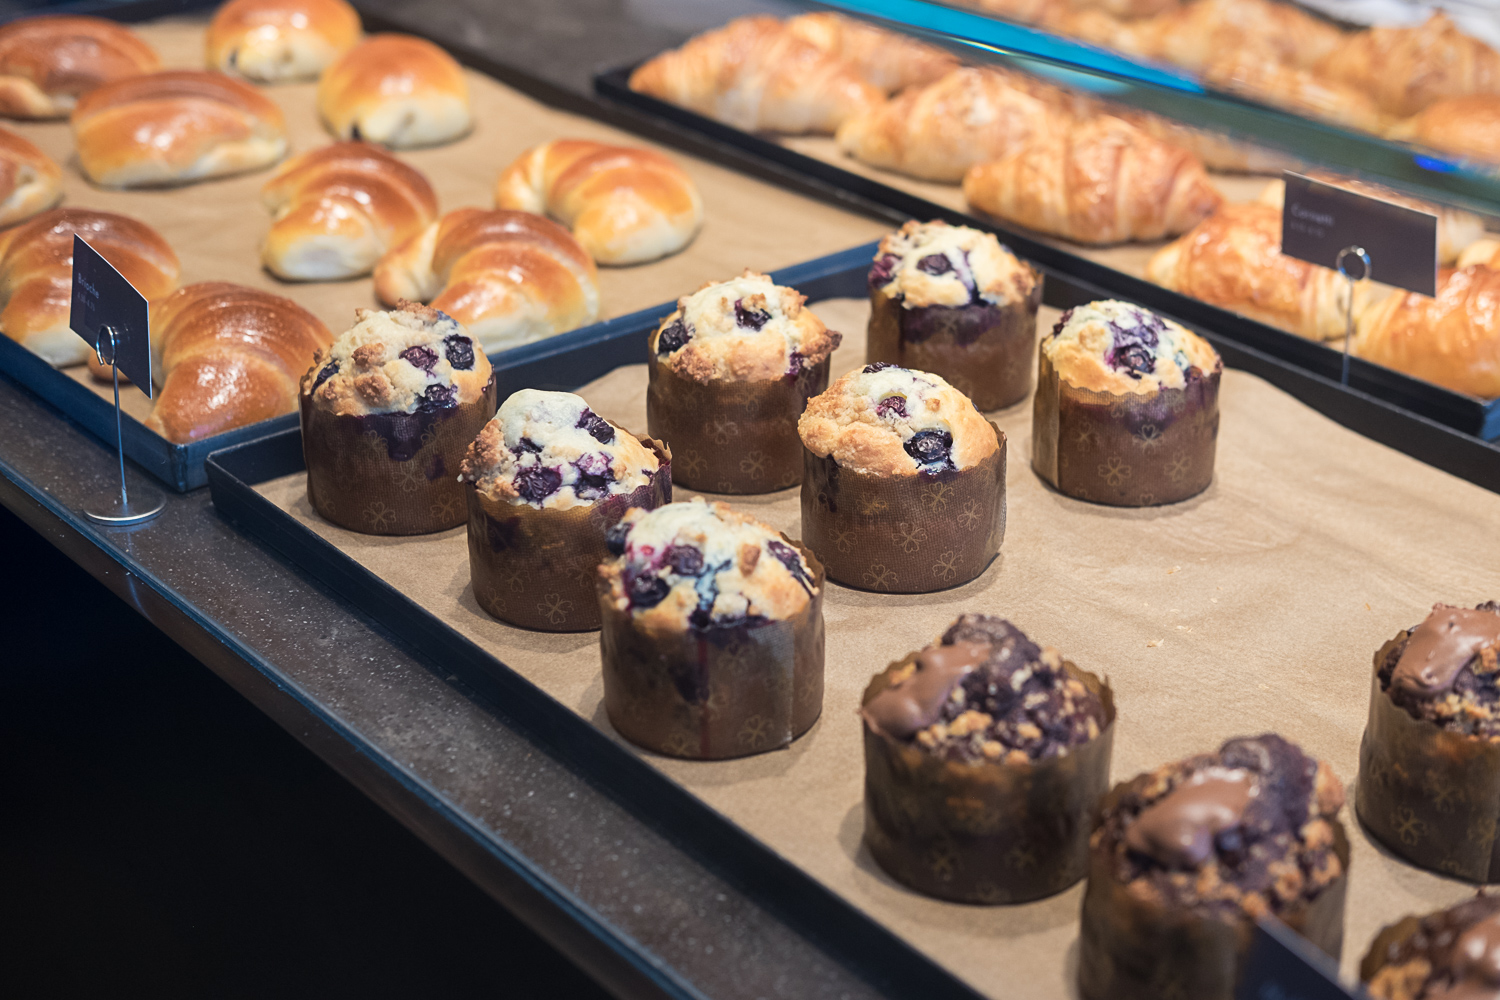 Handcrafted pastries made with European-style butter and Italian fillings will be served all day. Delicious on their own; even better when paired with espresso. (Image: Paola Thomas / Seattle Refined)<p></p><p><br></p>